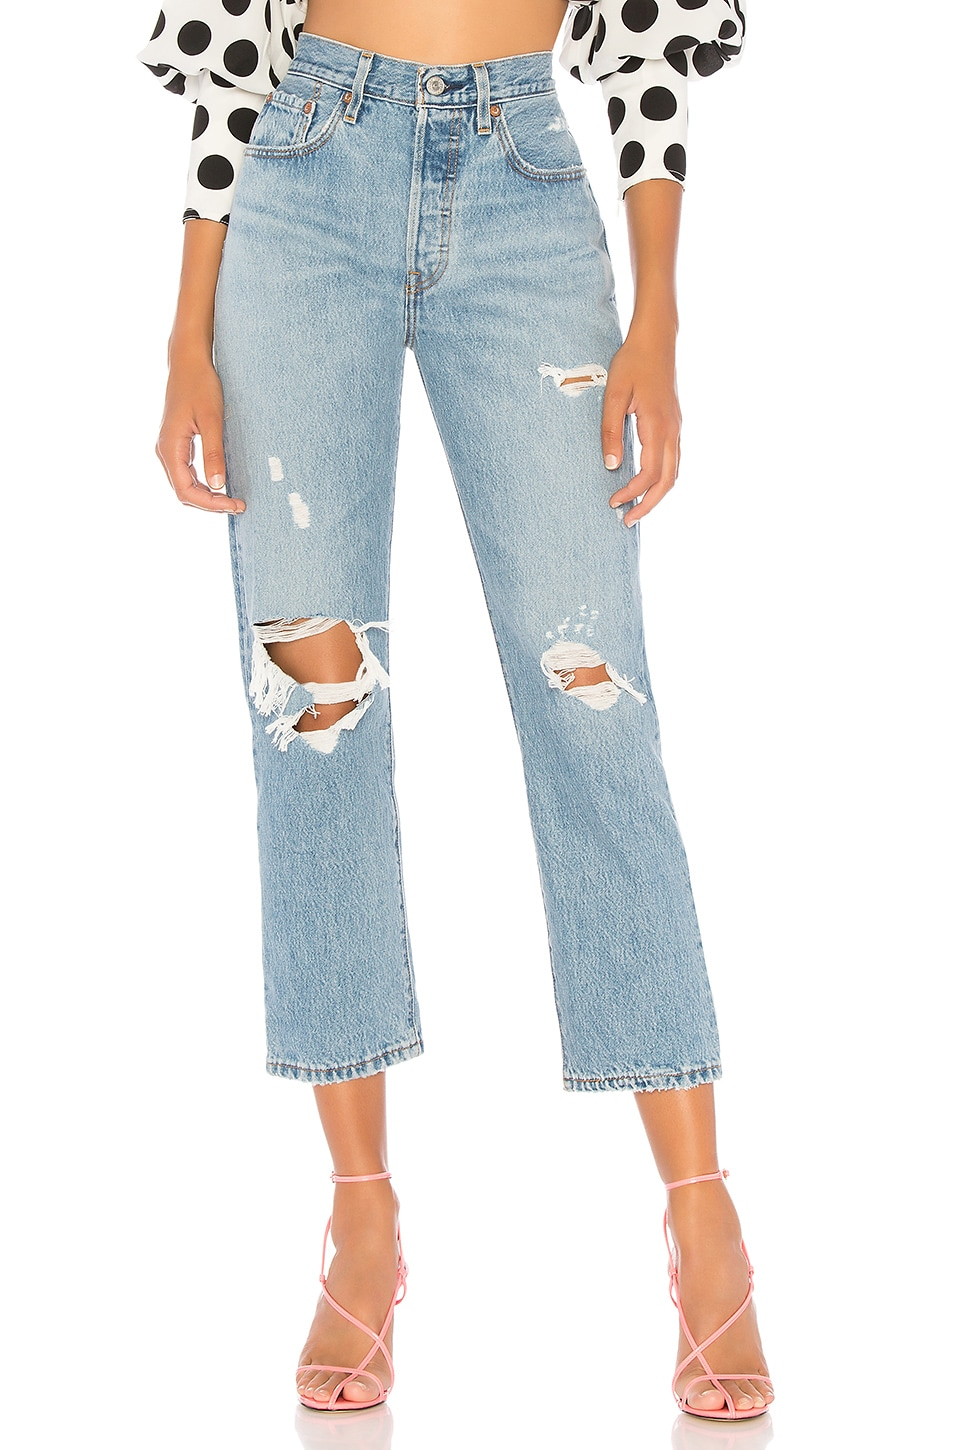 LEVI'S 501 Crop in Authentically Yours